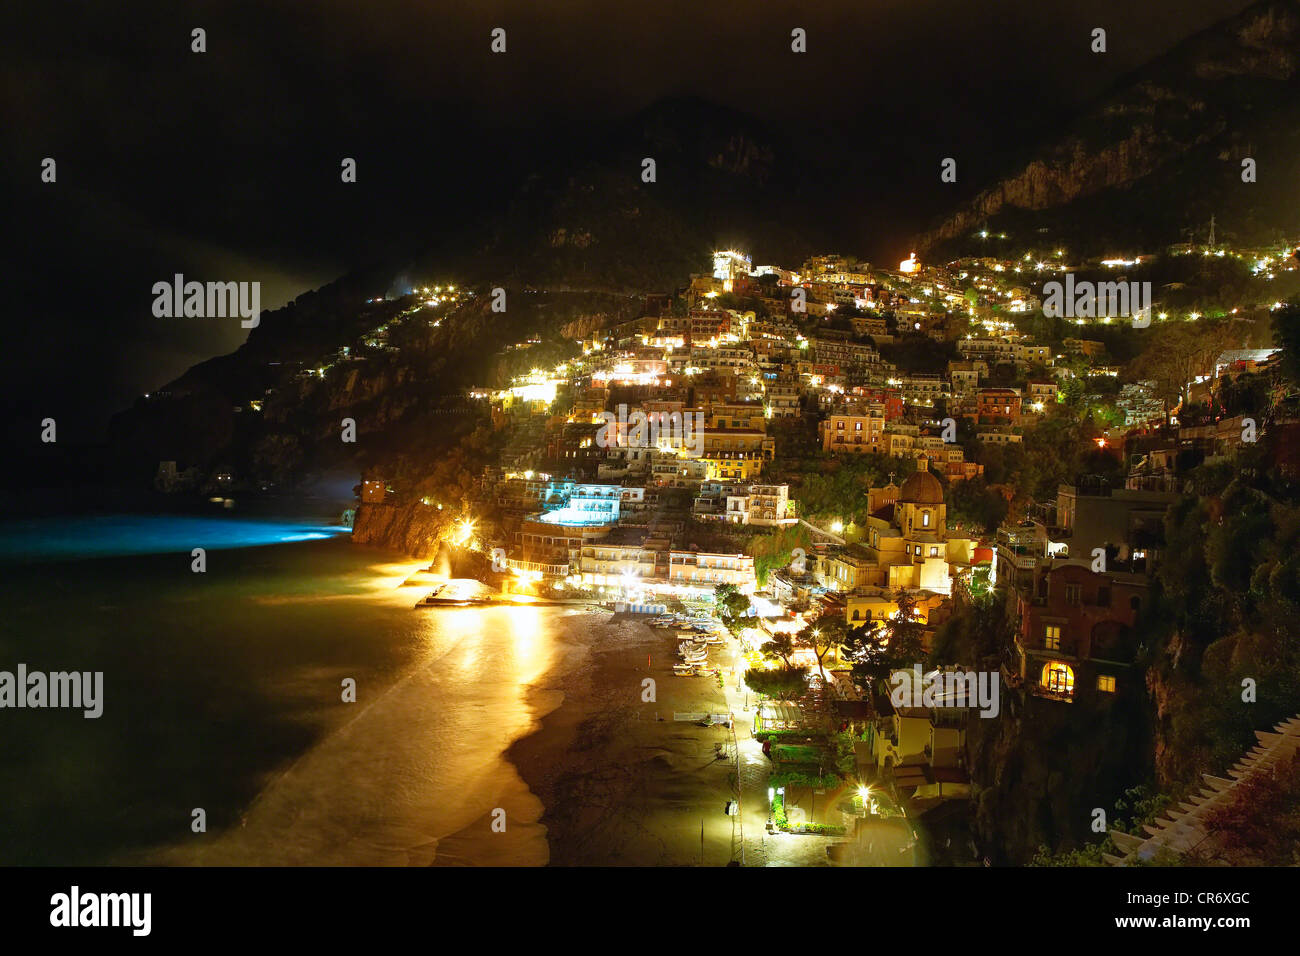 High Angle View of Positano Nightscape, Campania, Italy - Stock Image